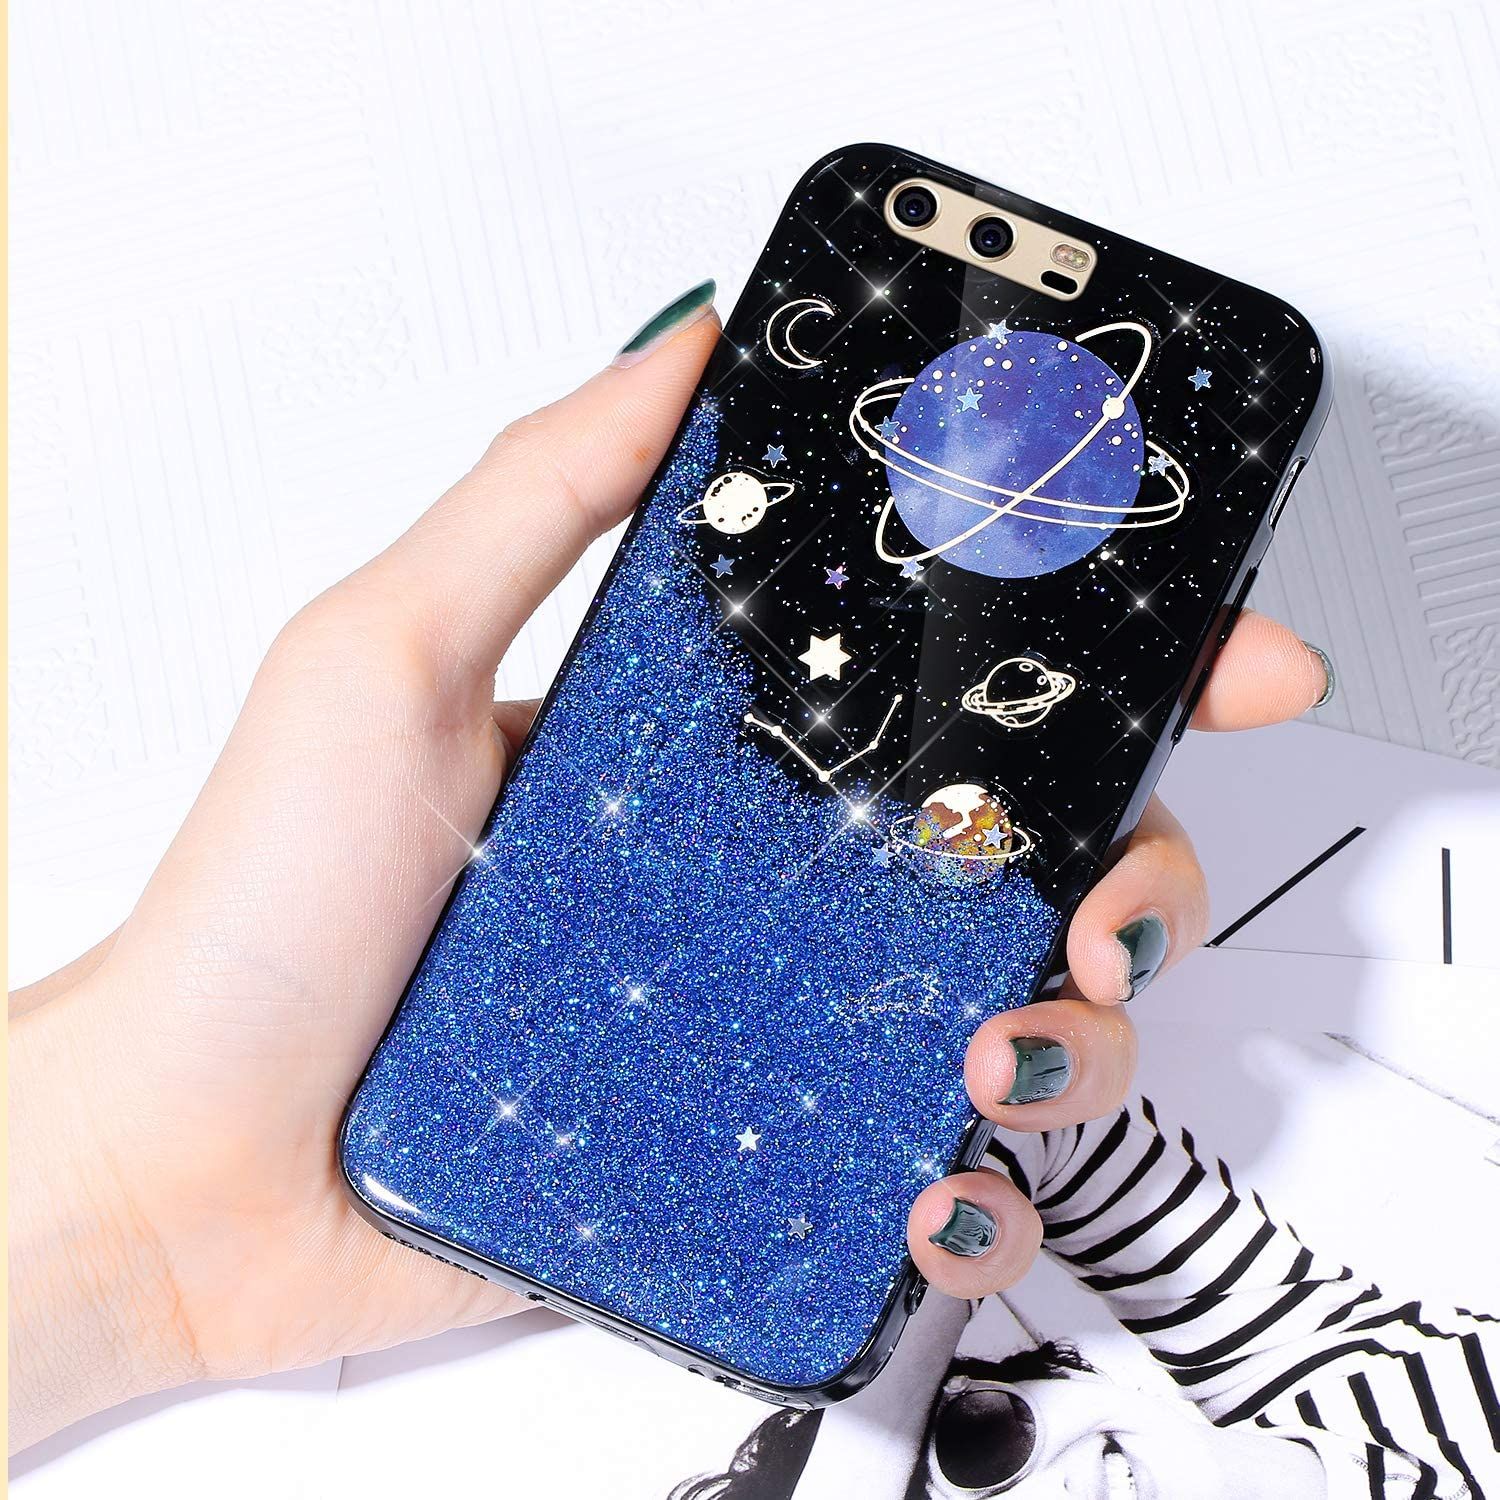 Case for Huawei P10 Plus Shiny Super Large special price !! intense SALE Cover Sparkle Starry Glitter